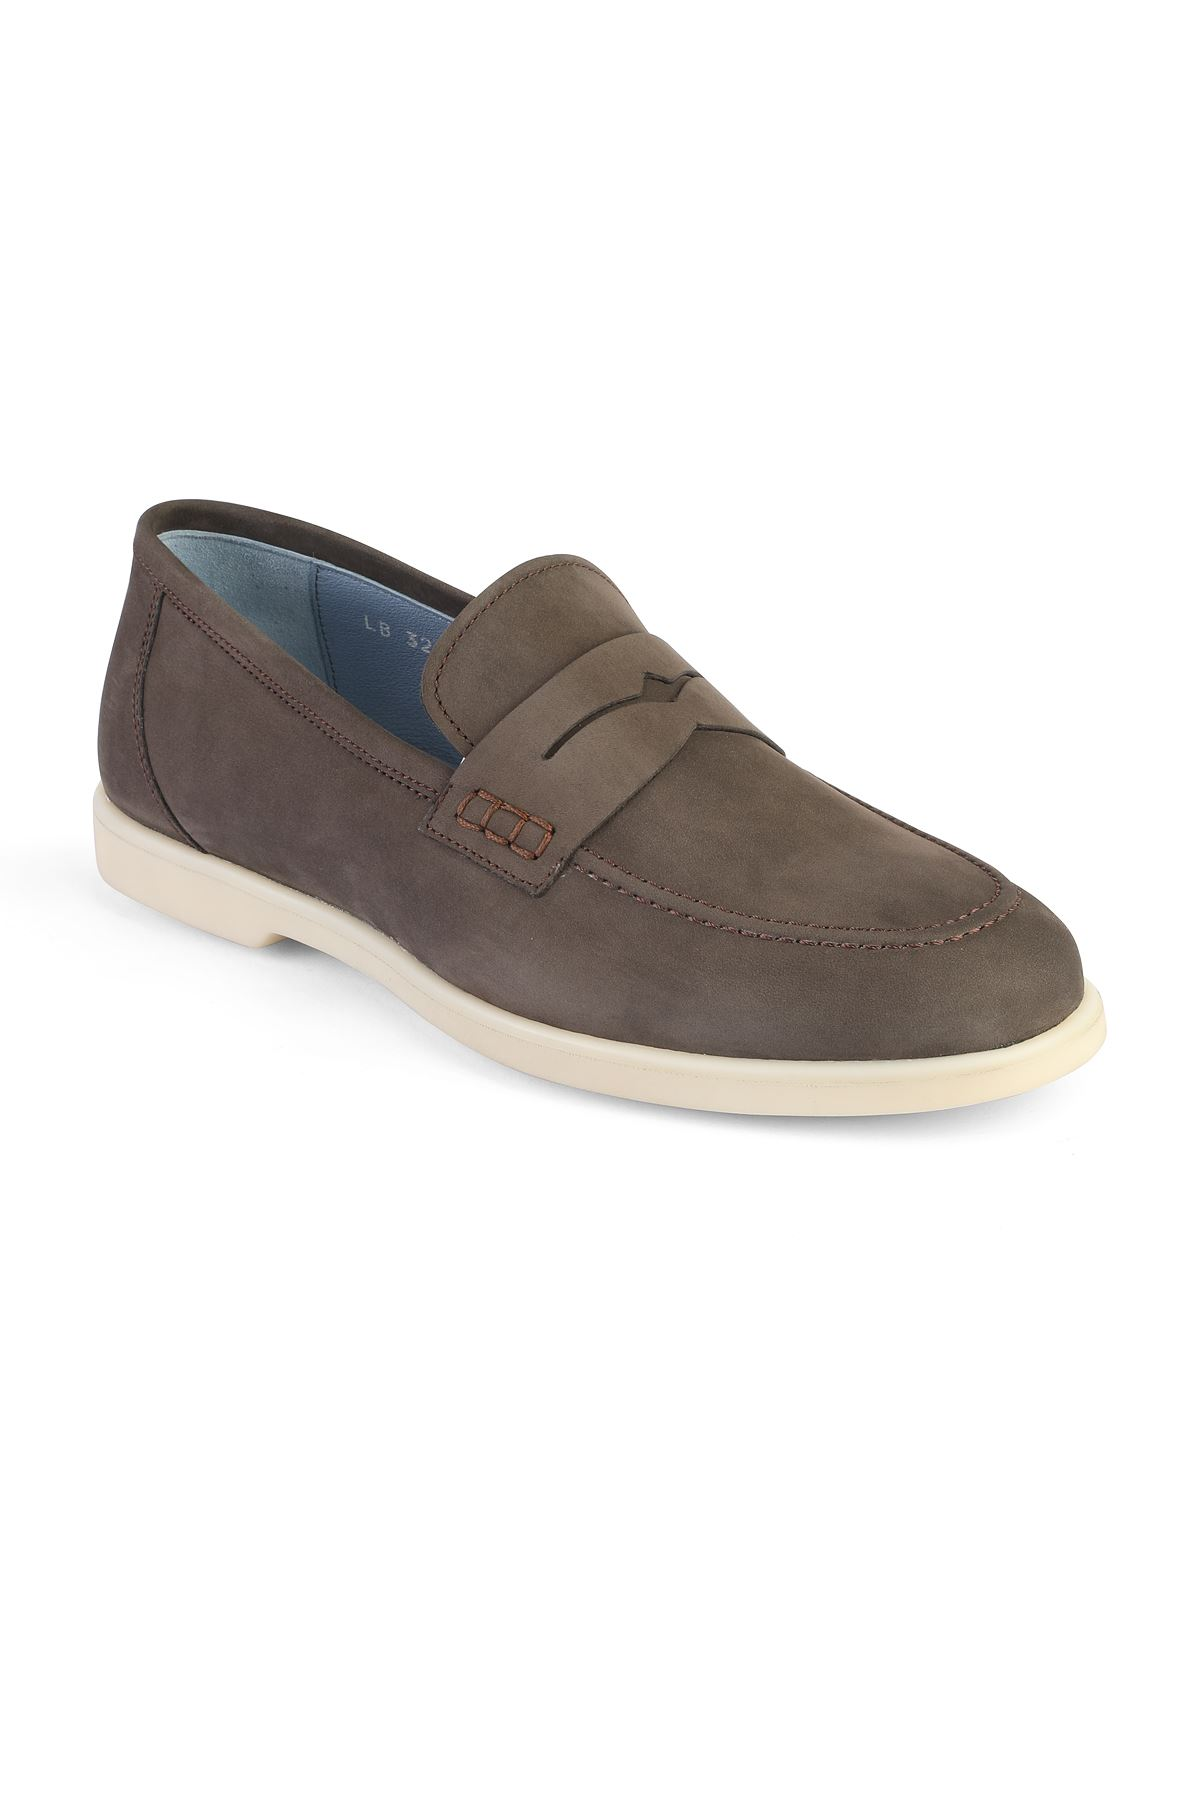 Libero 3216 Brown Loafer Shoes